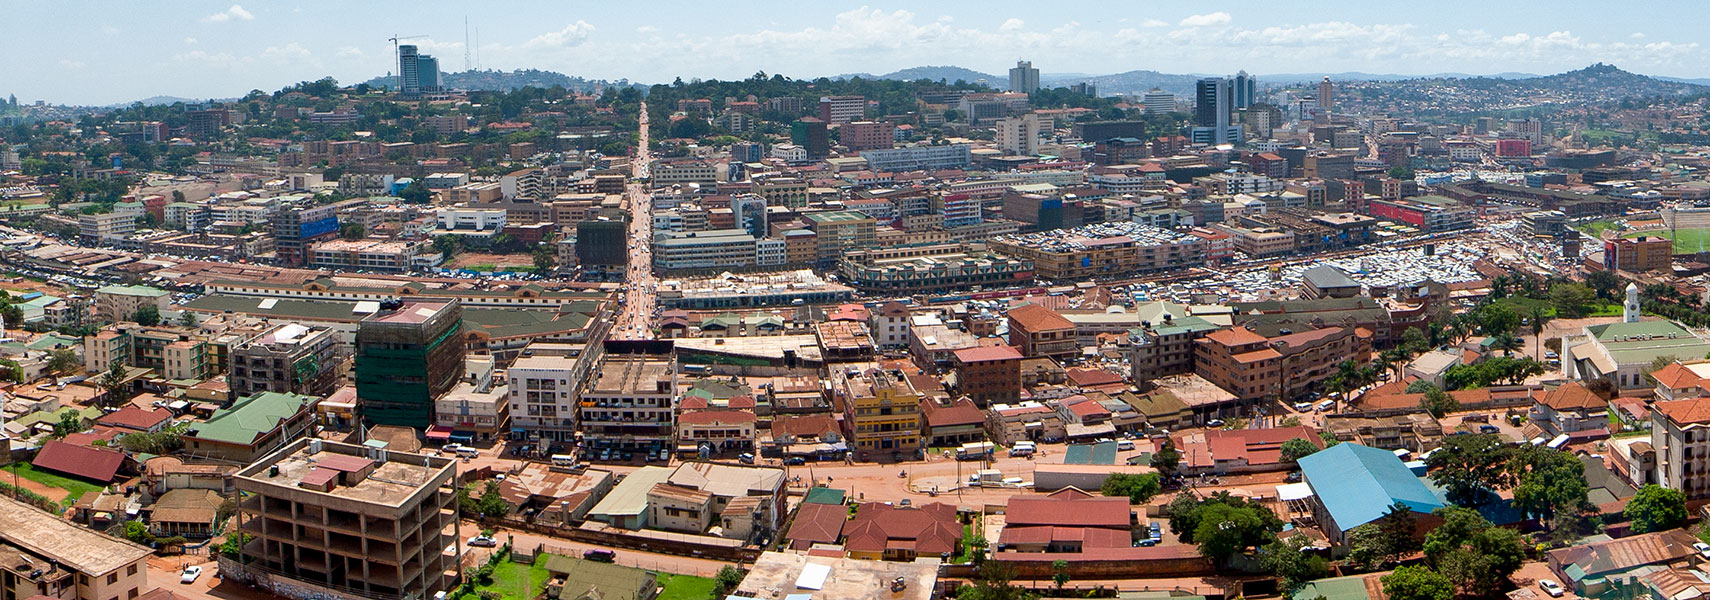 Google Map of the City of Kampala  Uganda   Nations Online Project     Satellite View and Map of the City of Kampala  Uganda